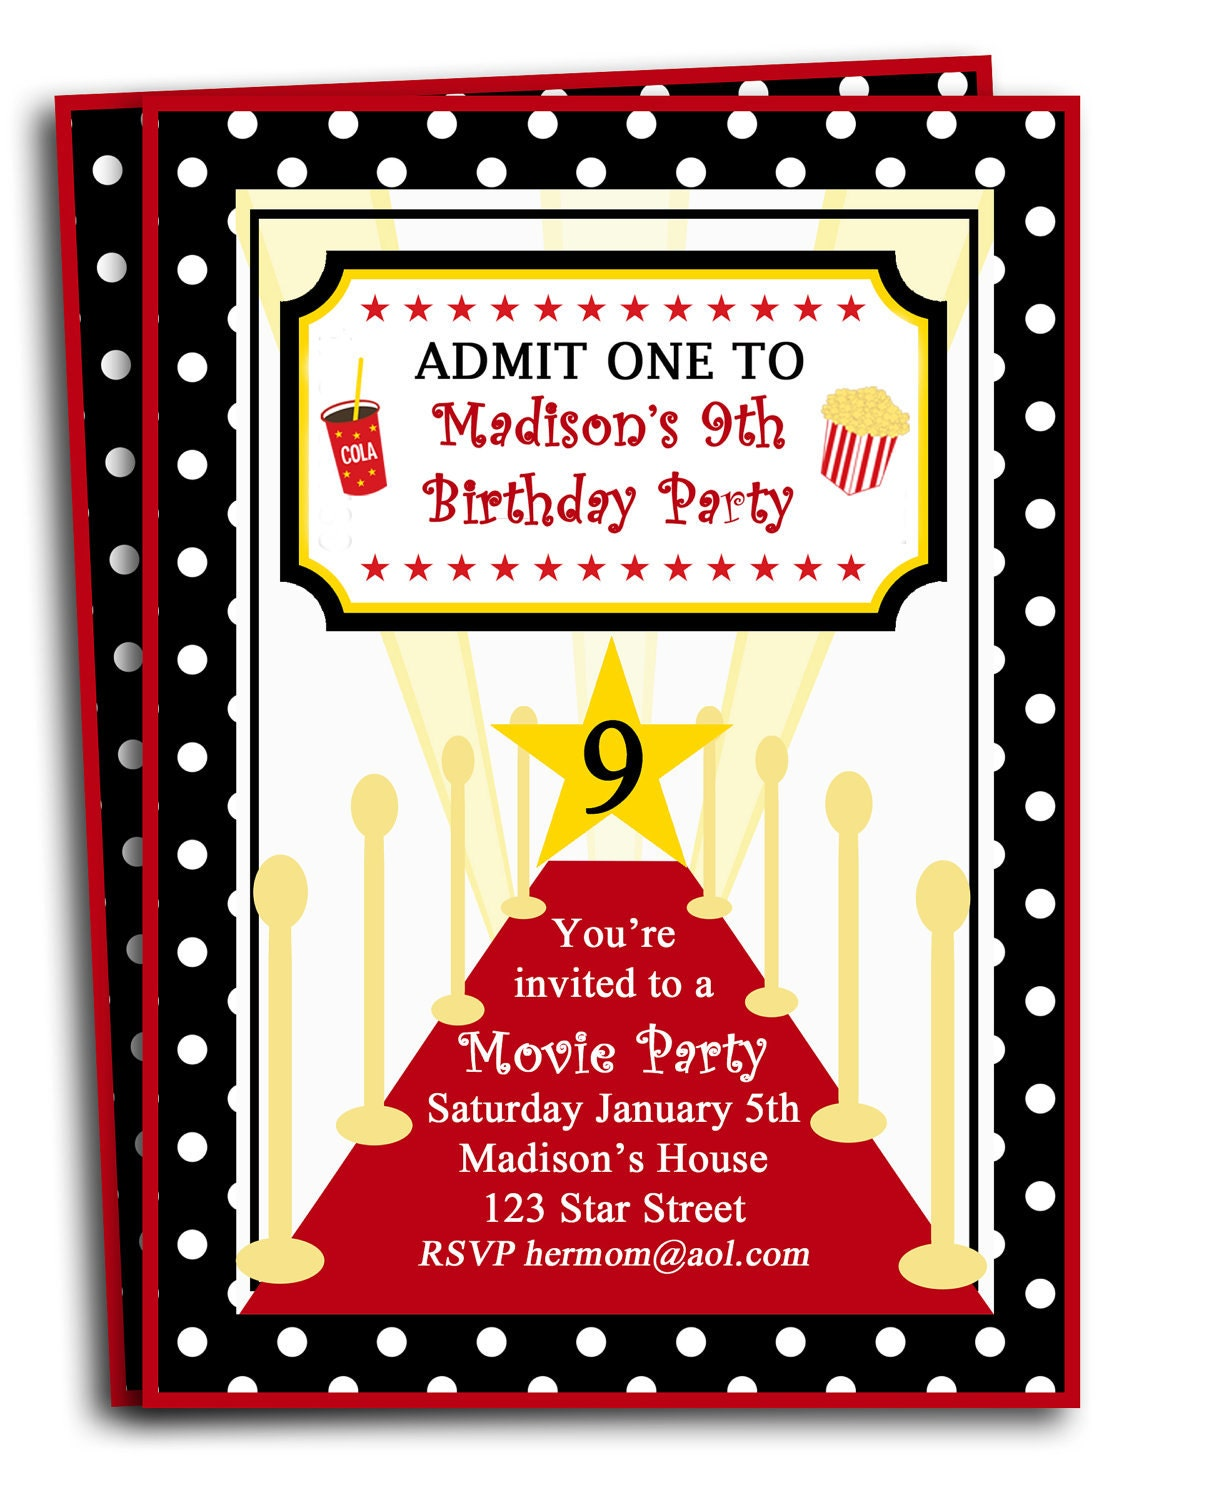 Red Carpet Party Invitation Printable Or Printed With FREE